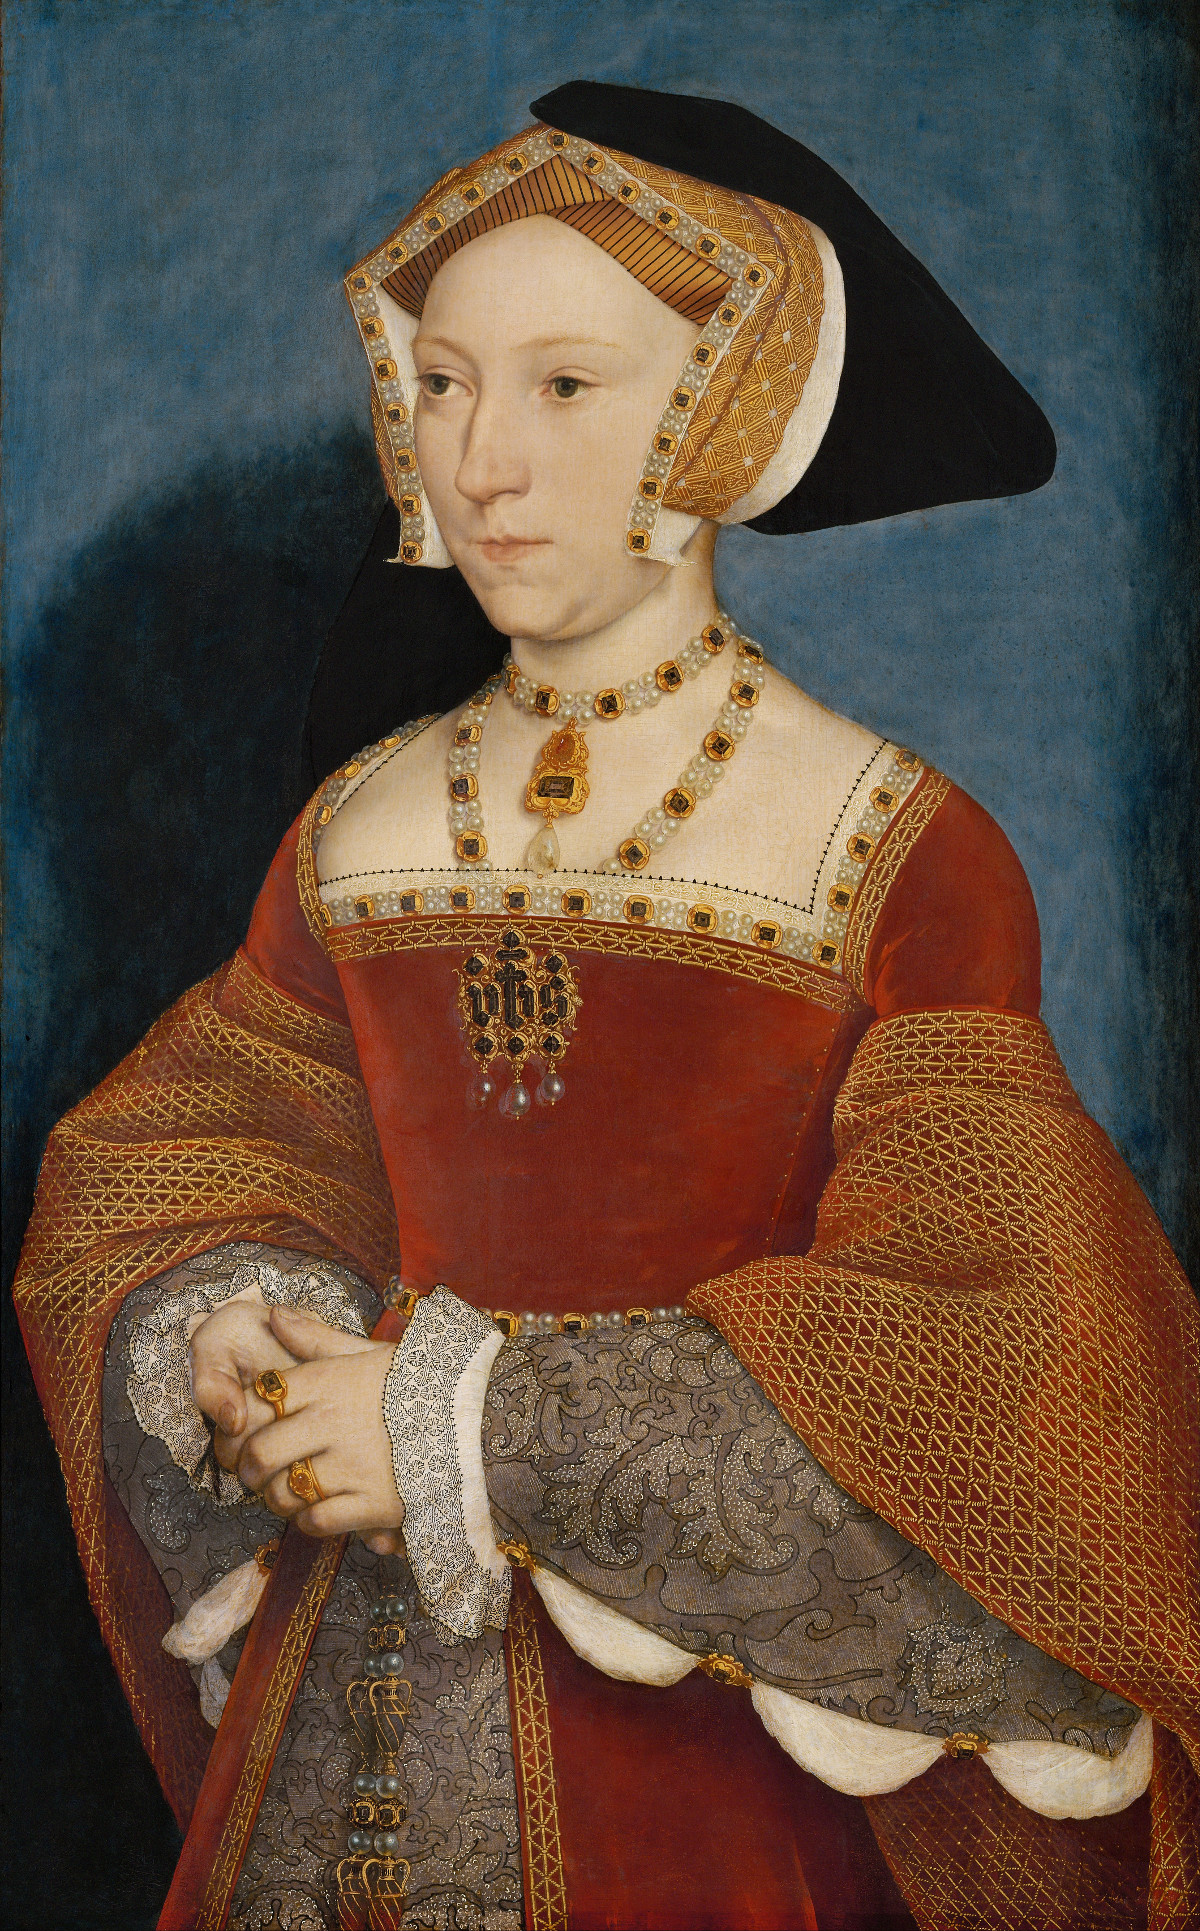 Jane Seymour, Queen of England by Hans Holbein the Younger, 1536